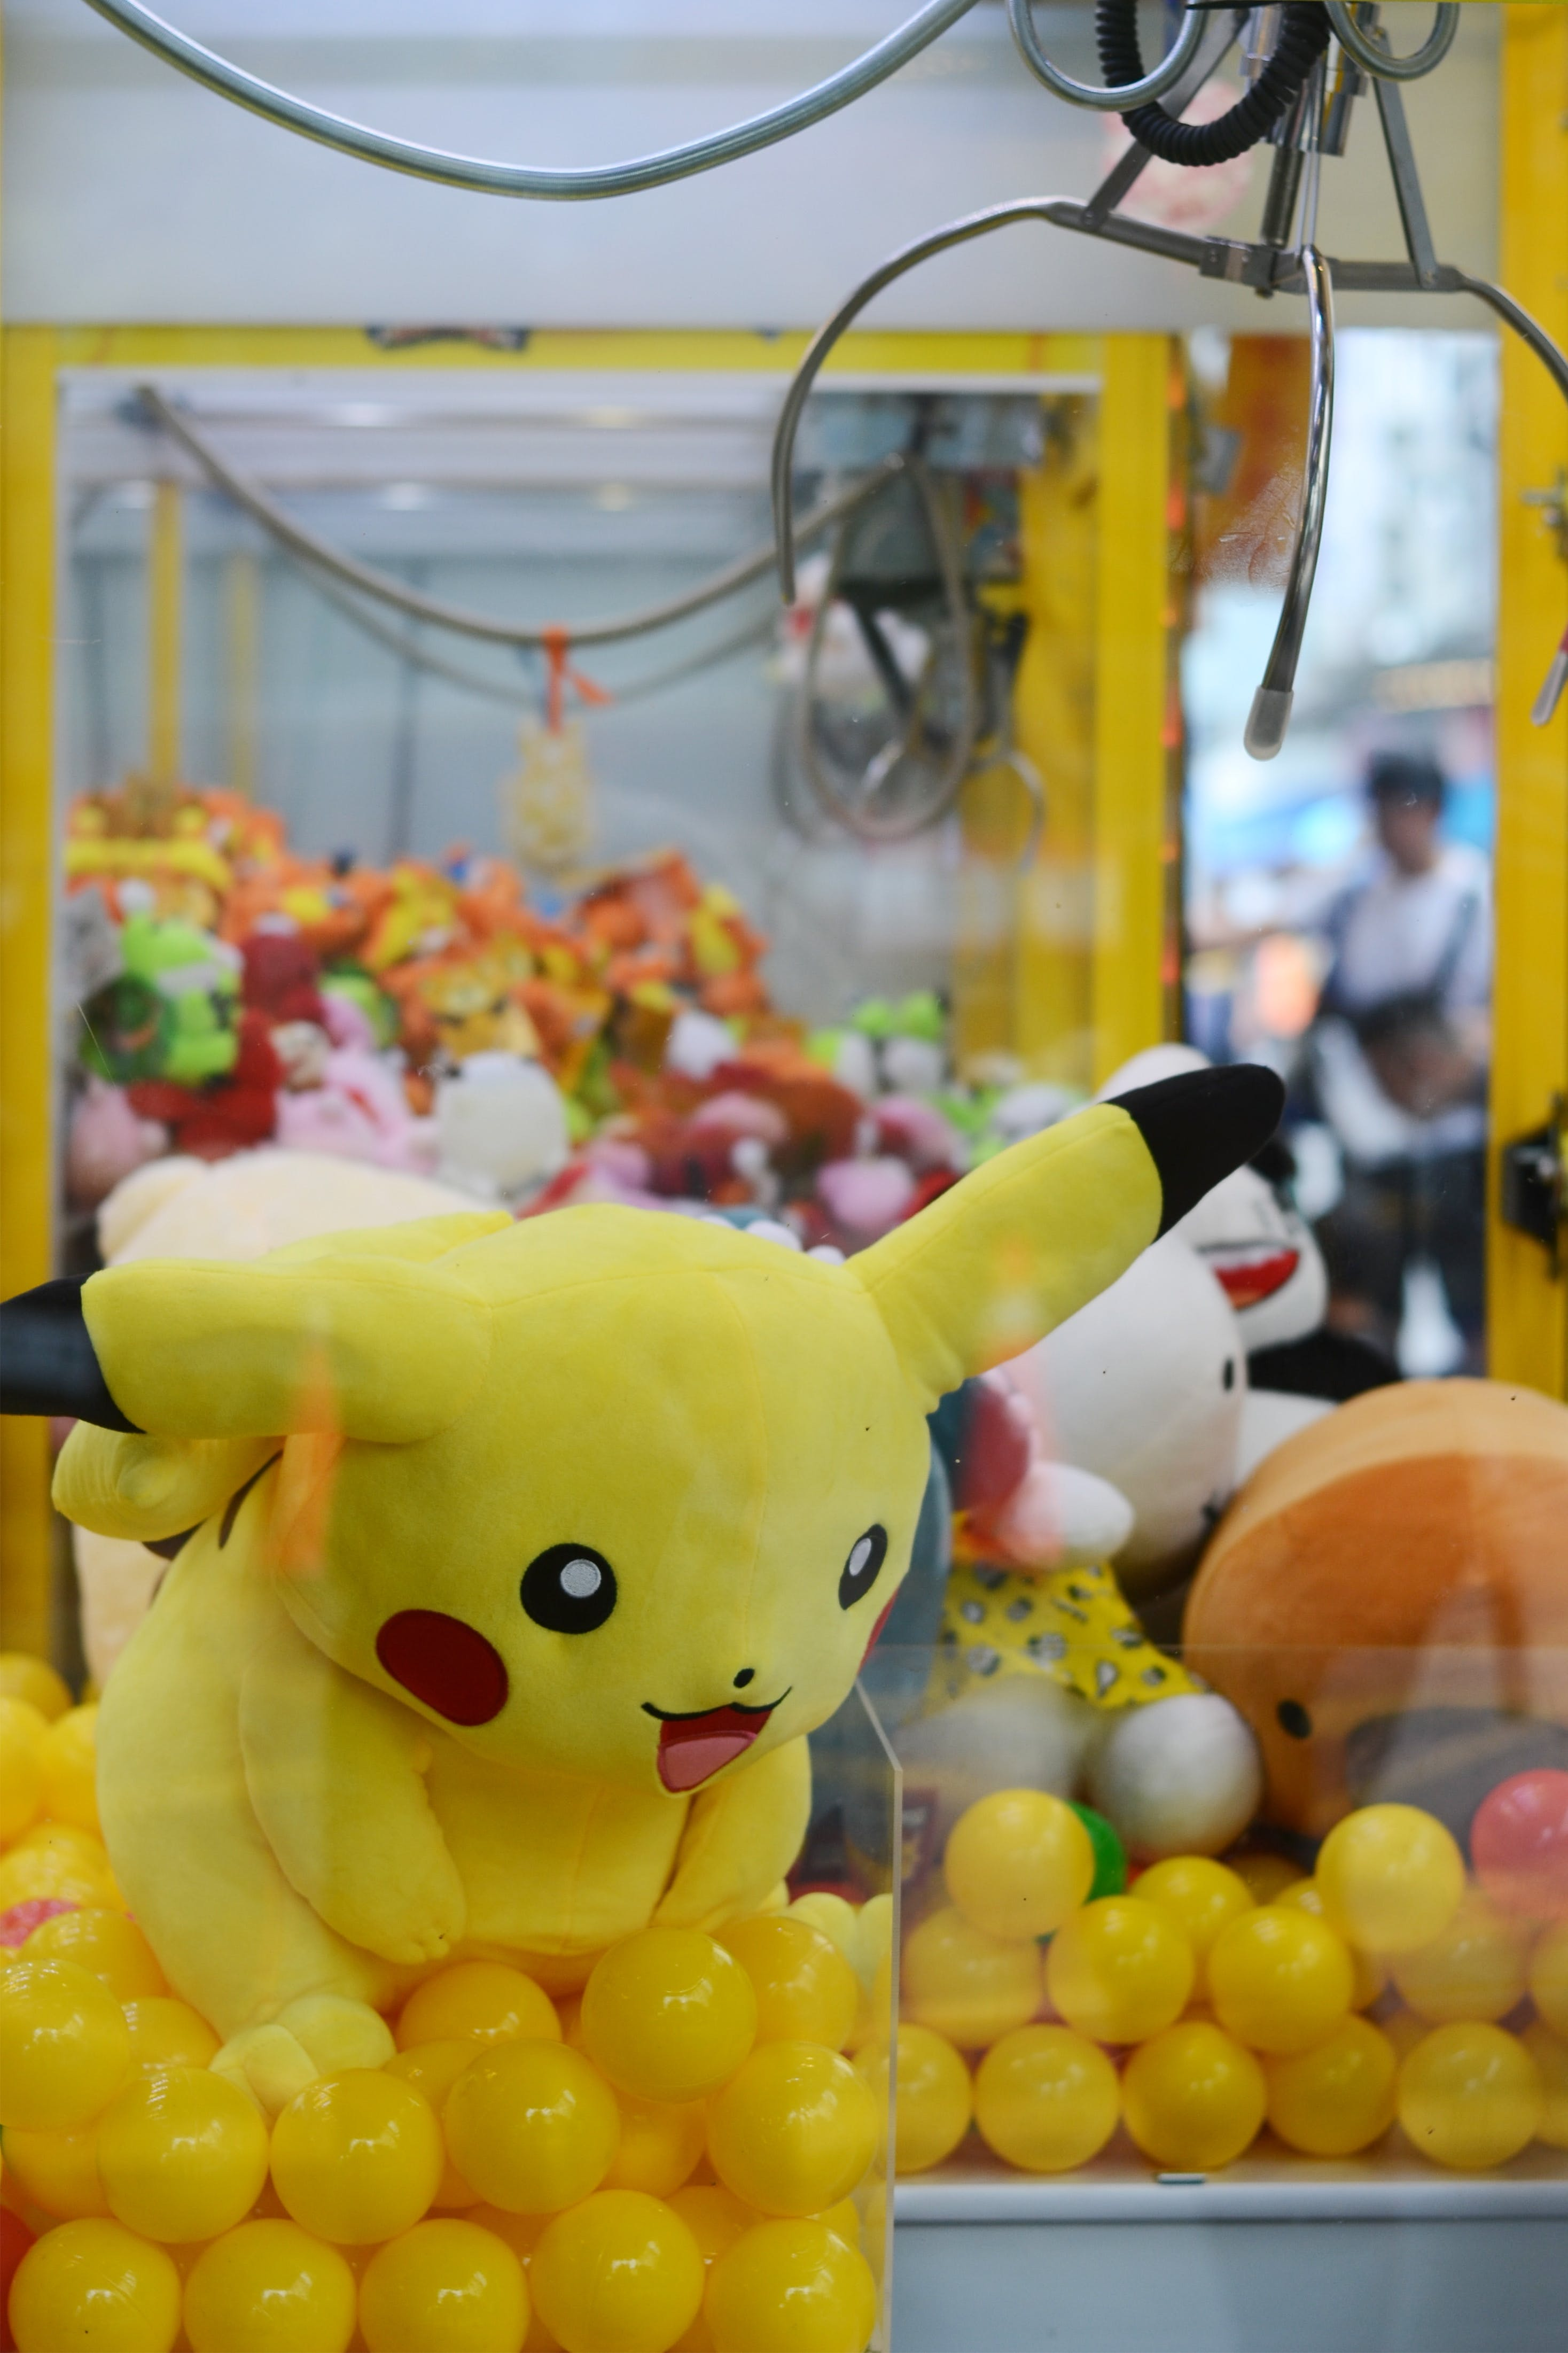 A claw machine with full of toys including a large pikachu from the Pokemon series